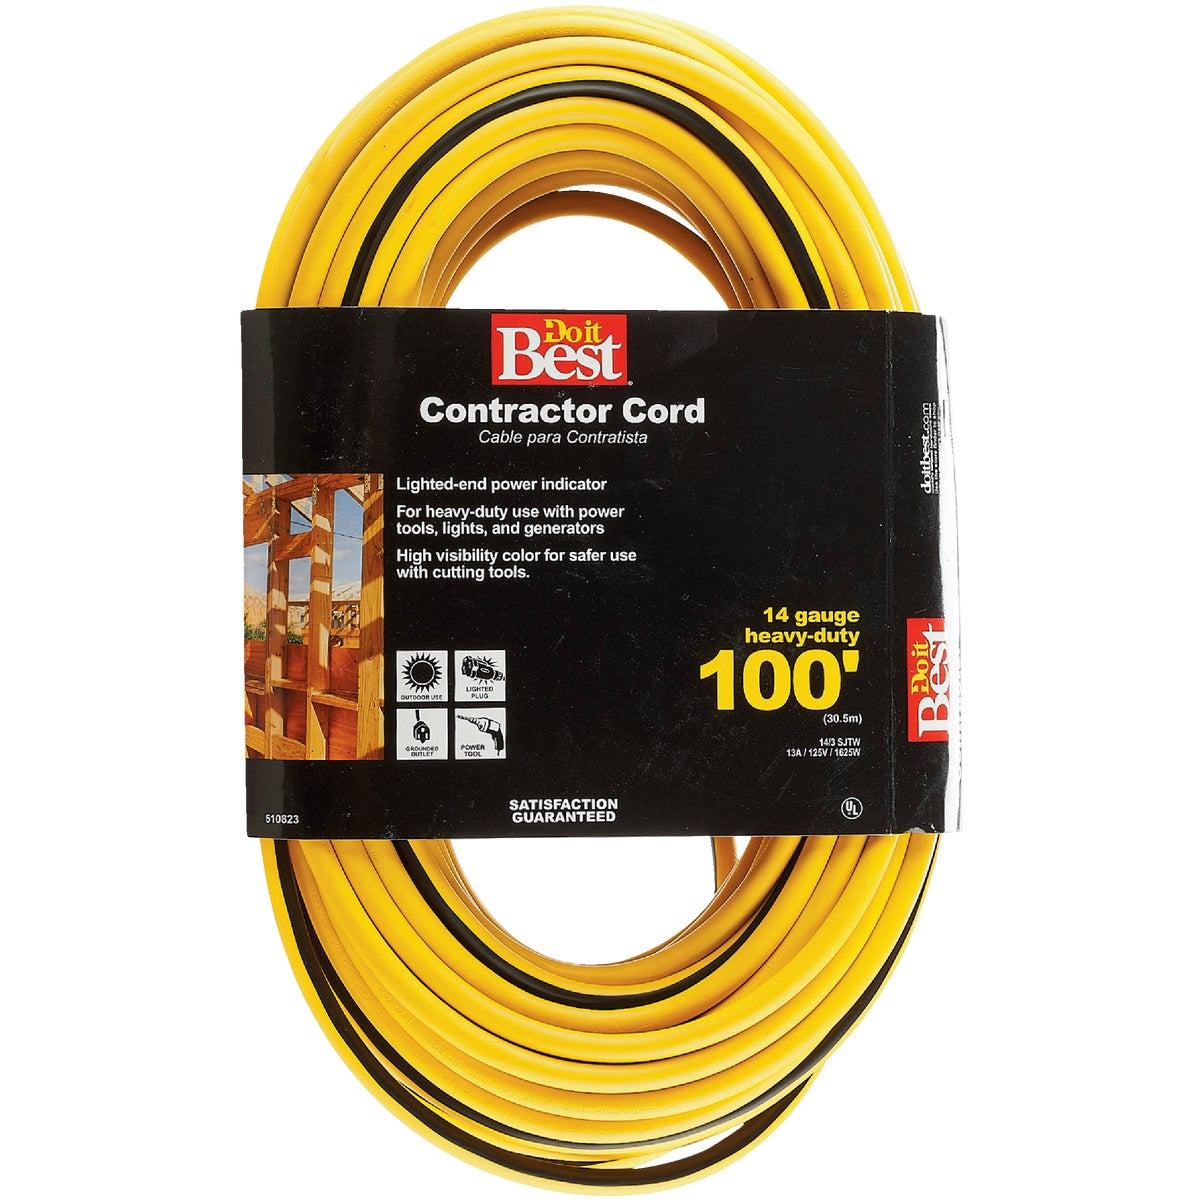 100' 14/3 LIGHTED CORD